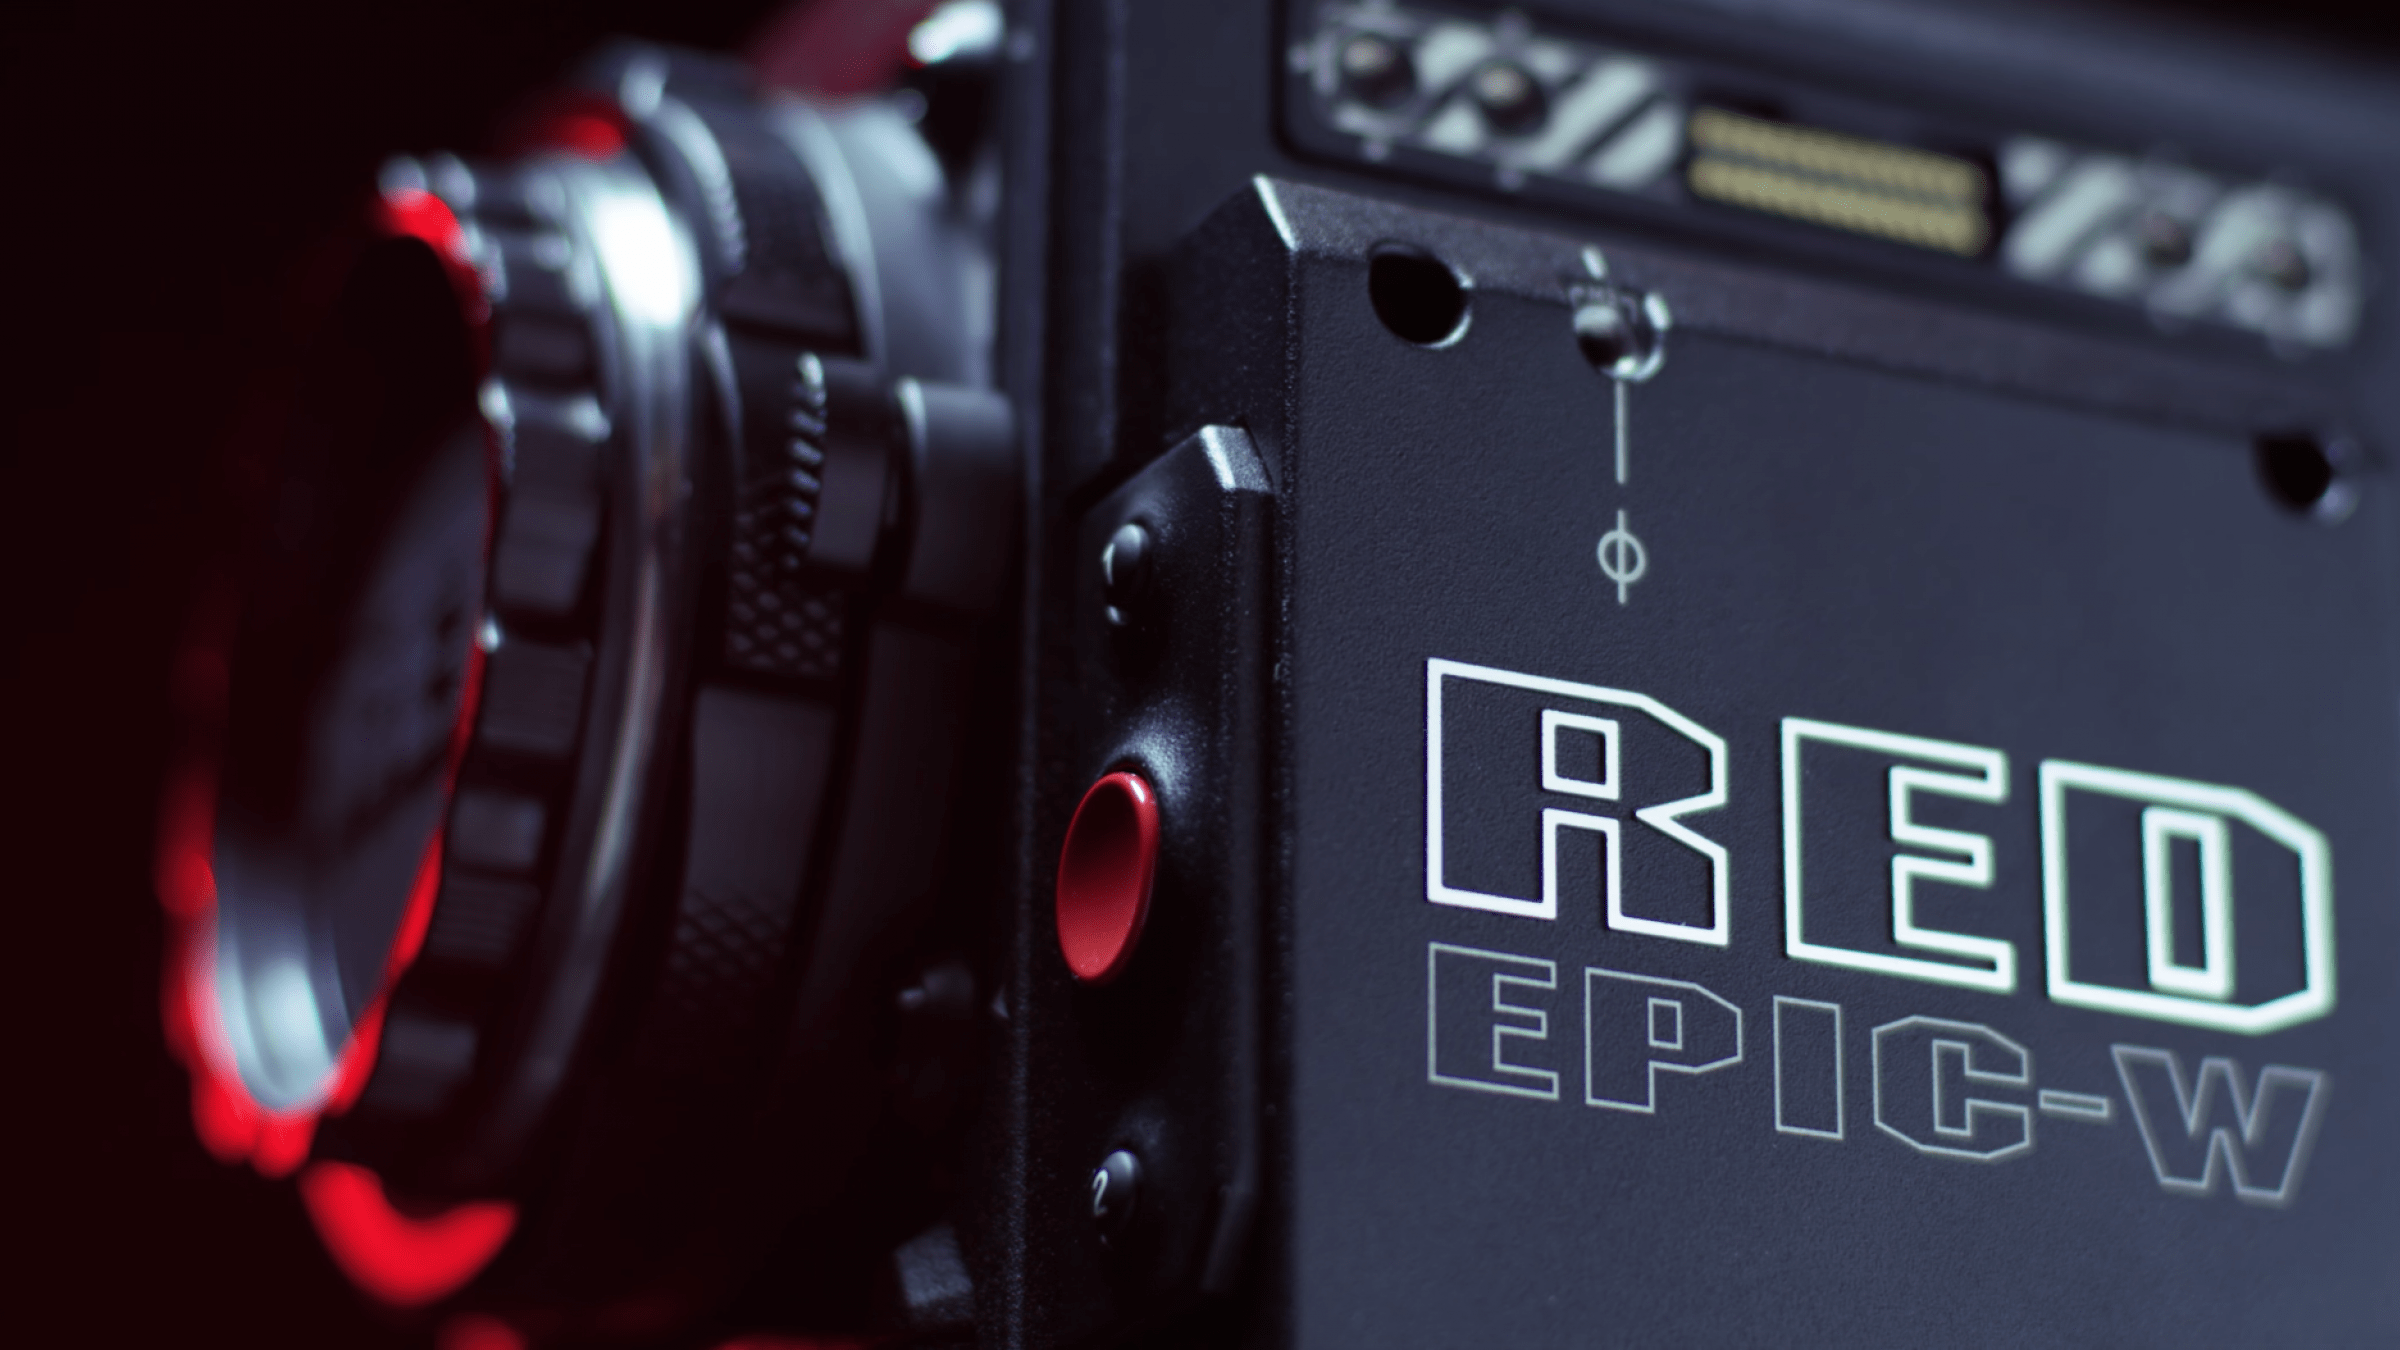 red_epic-min